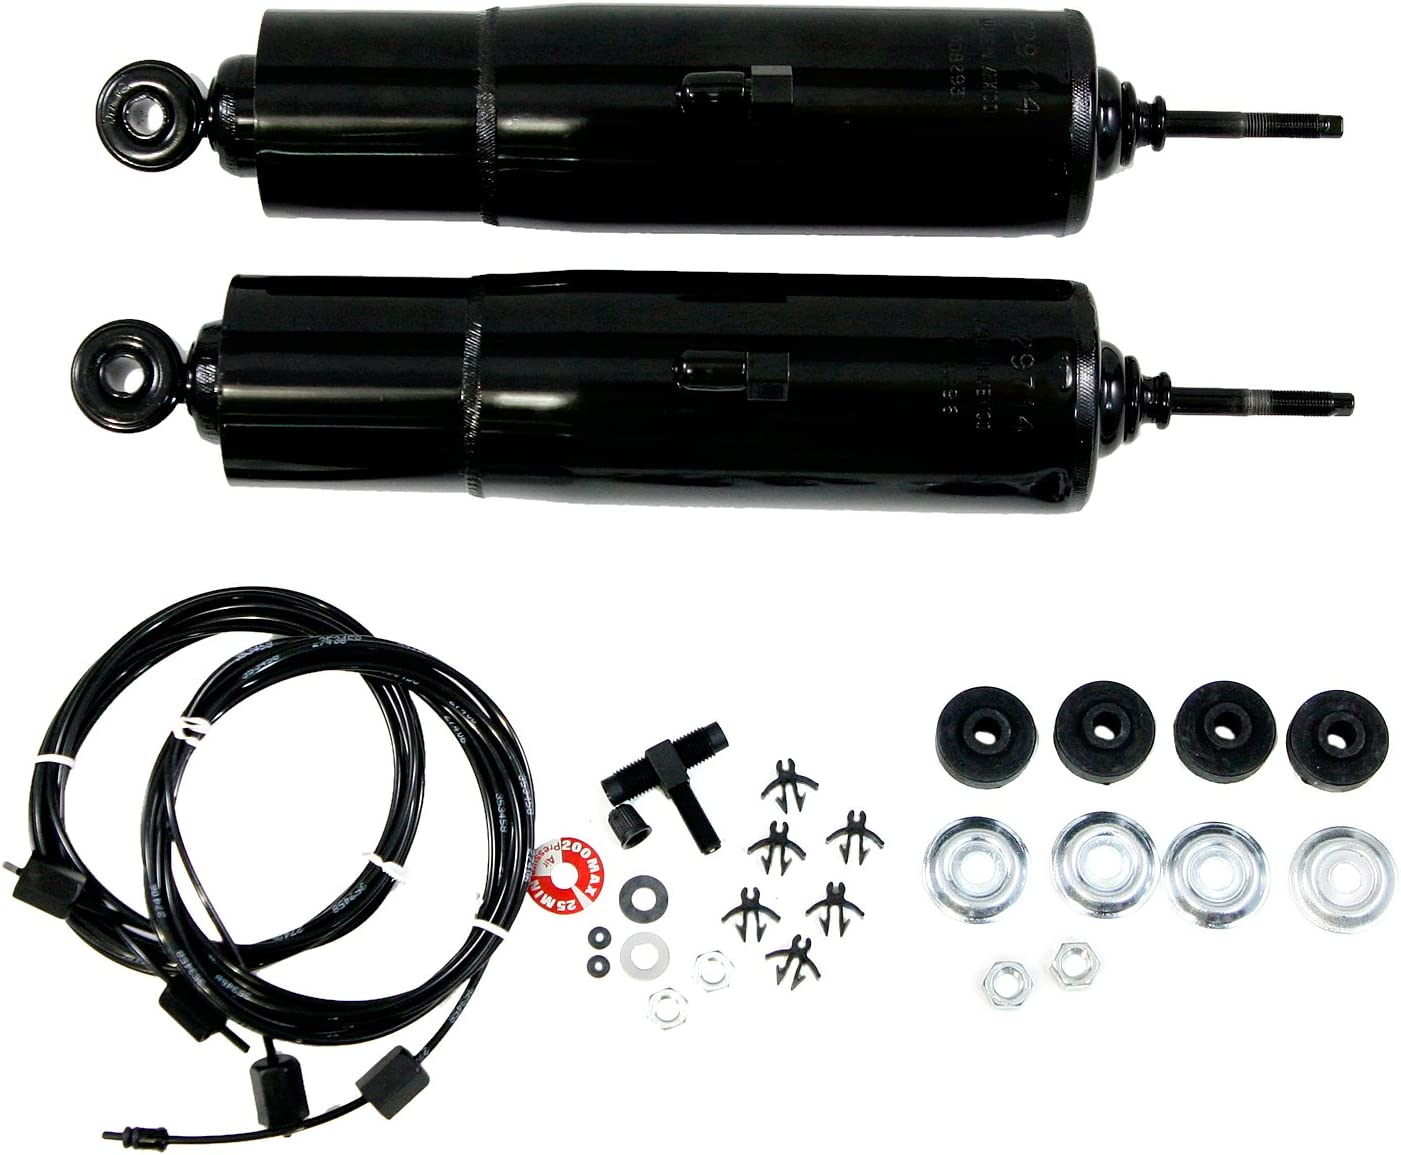 ACDelco Specialty 5 ☆ popular 504-508 Super-cheap Rear Air Lift Absorber Shock